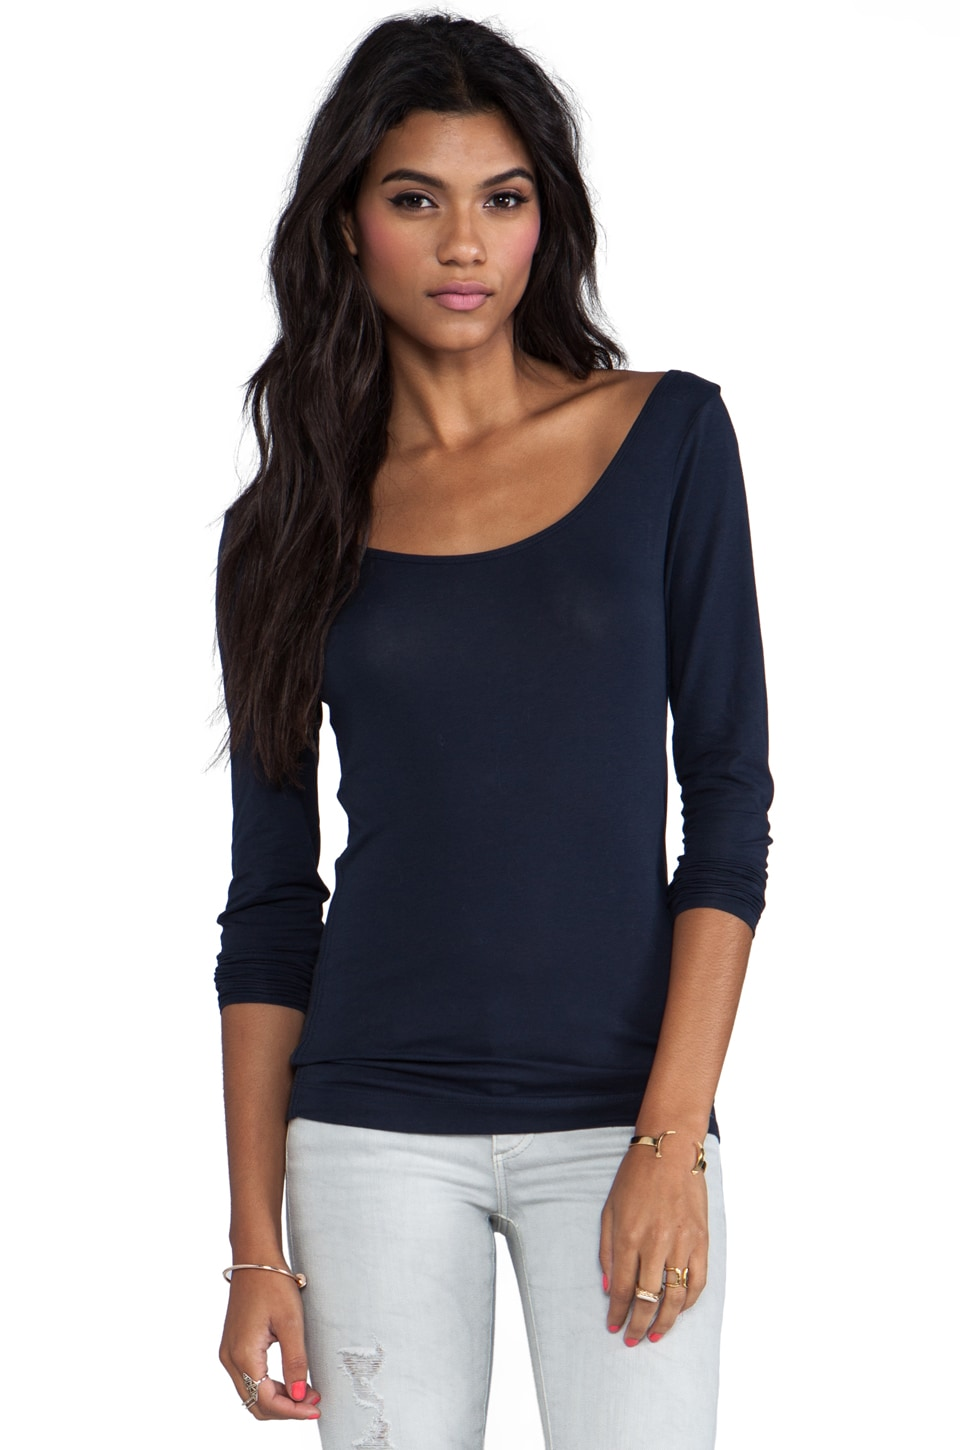 G-Star Raw Slim Long Sleeve Top in Japan Blue